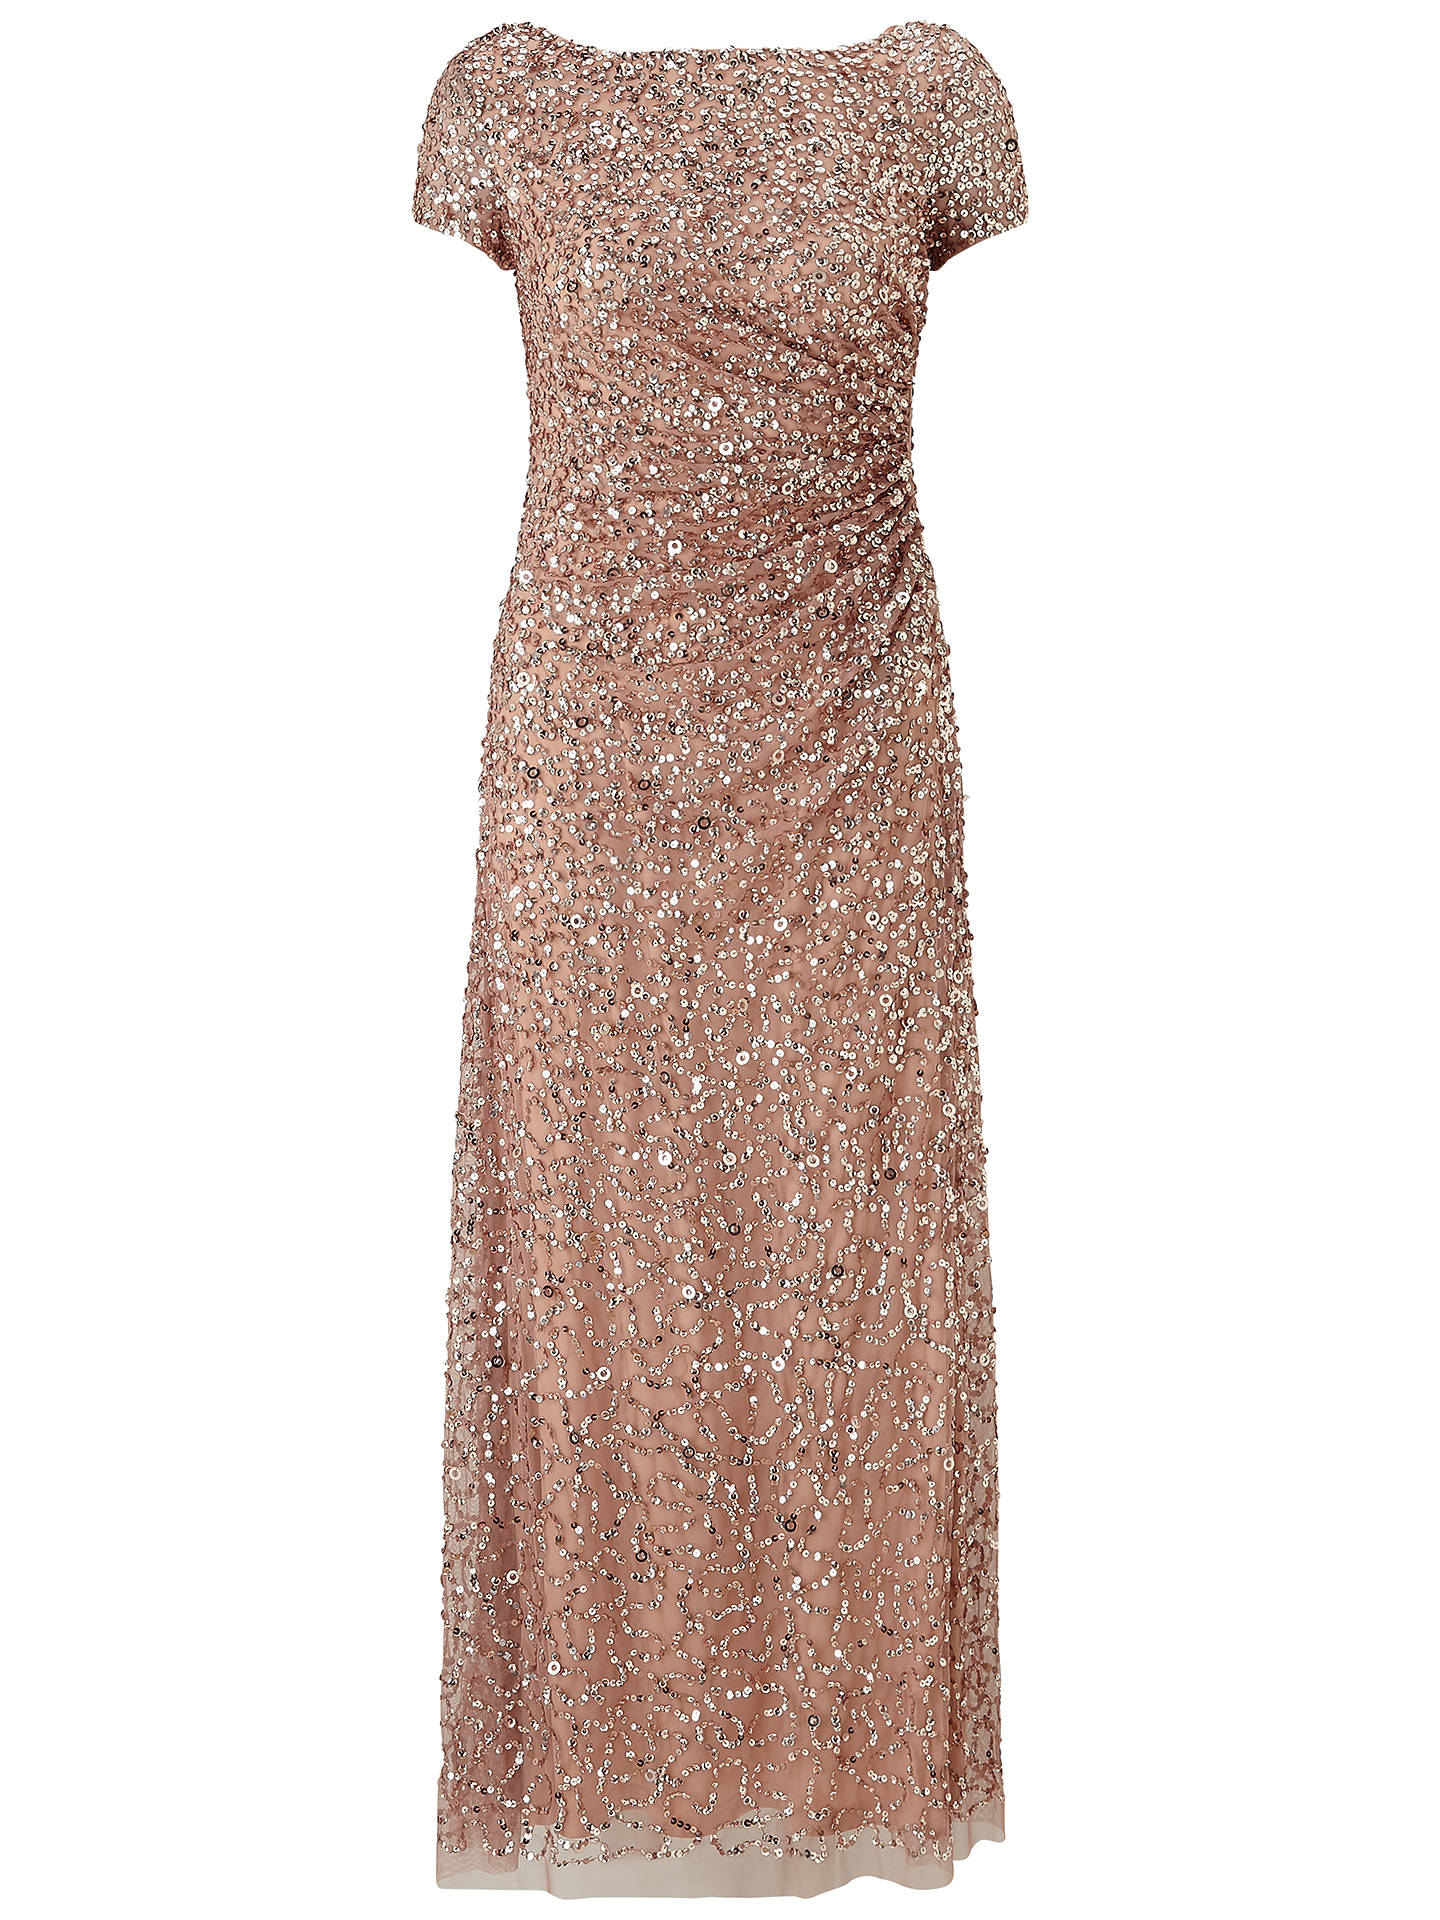 Adrianna Papell Petite Draped Sequin Dress Rose Gold At John Lewis Partners